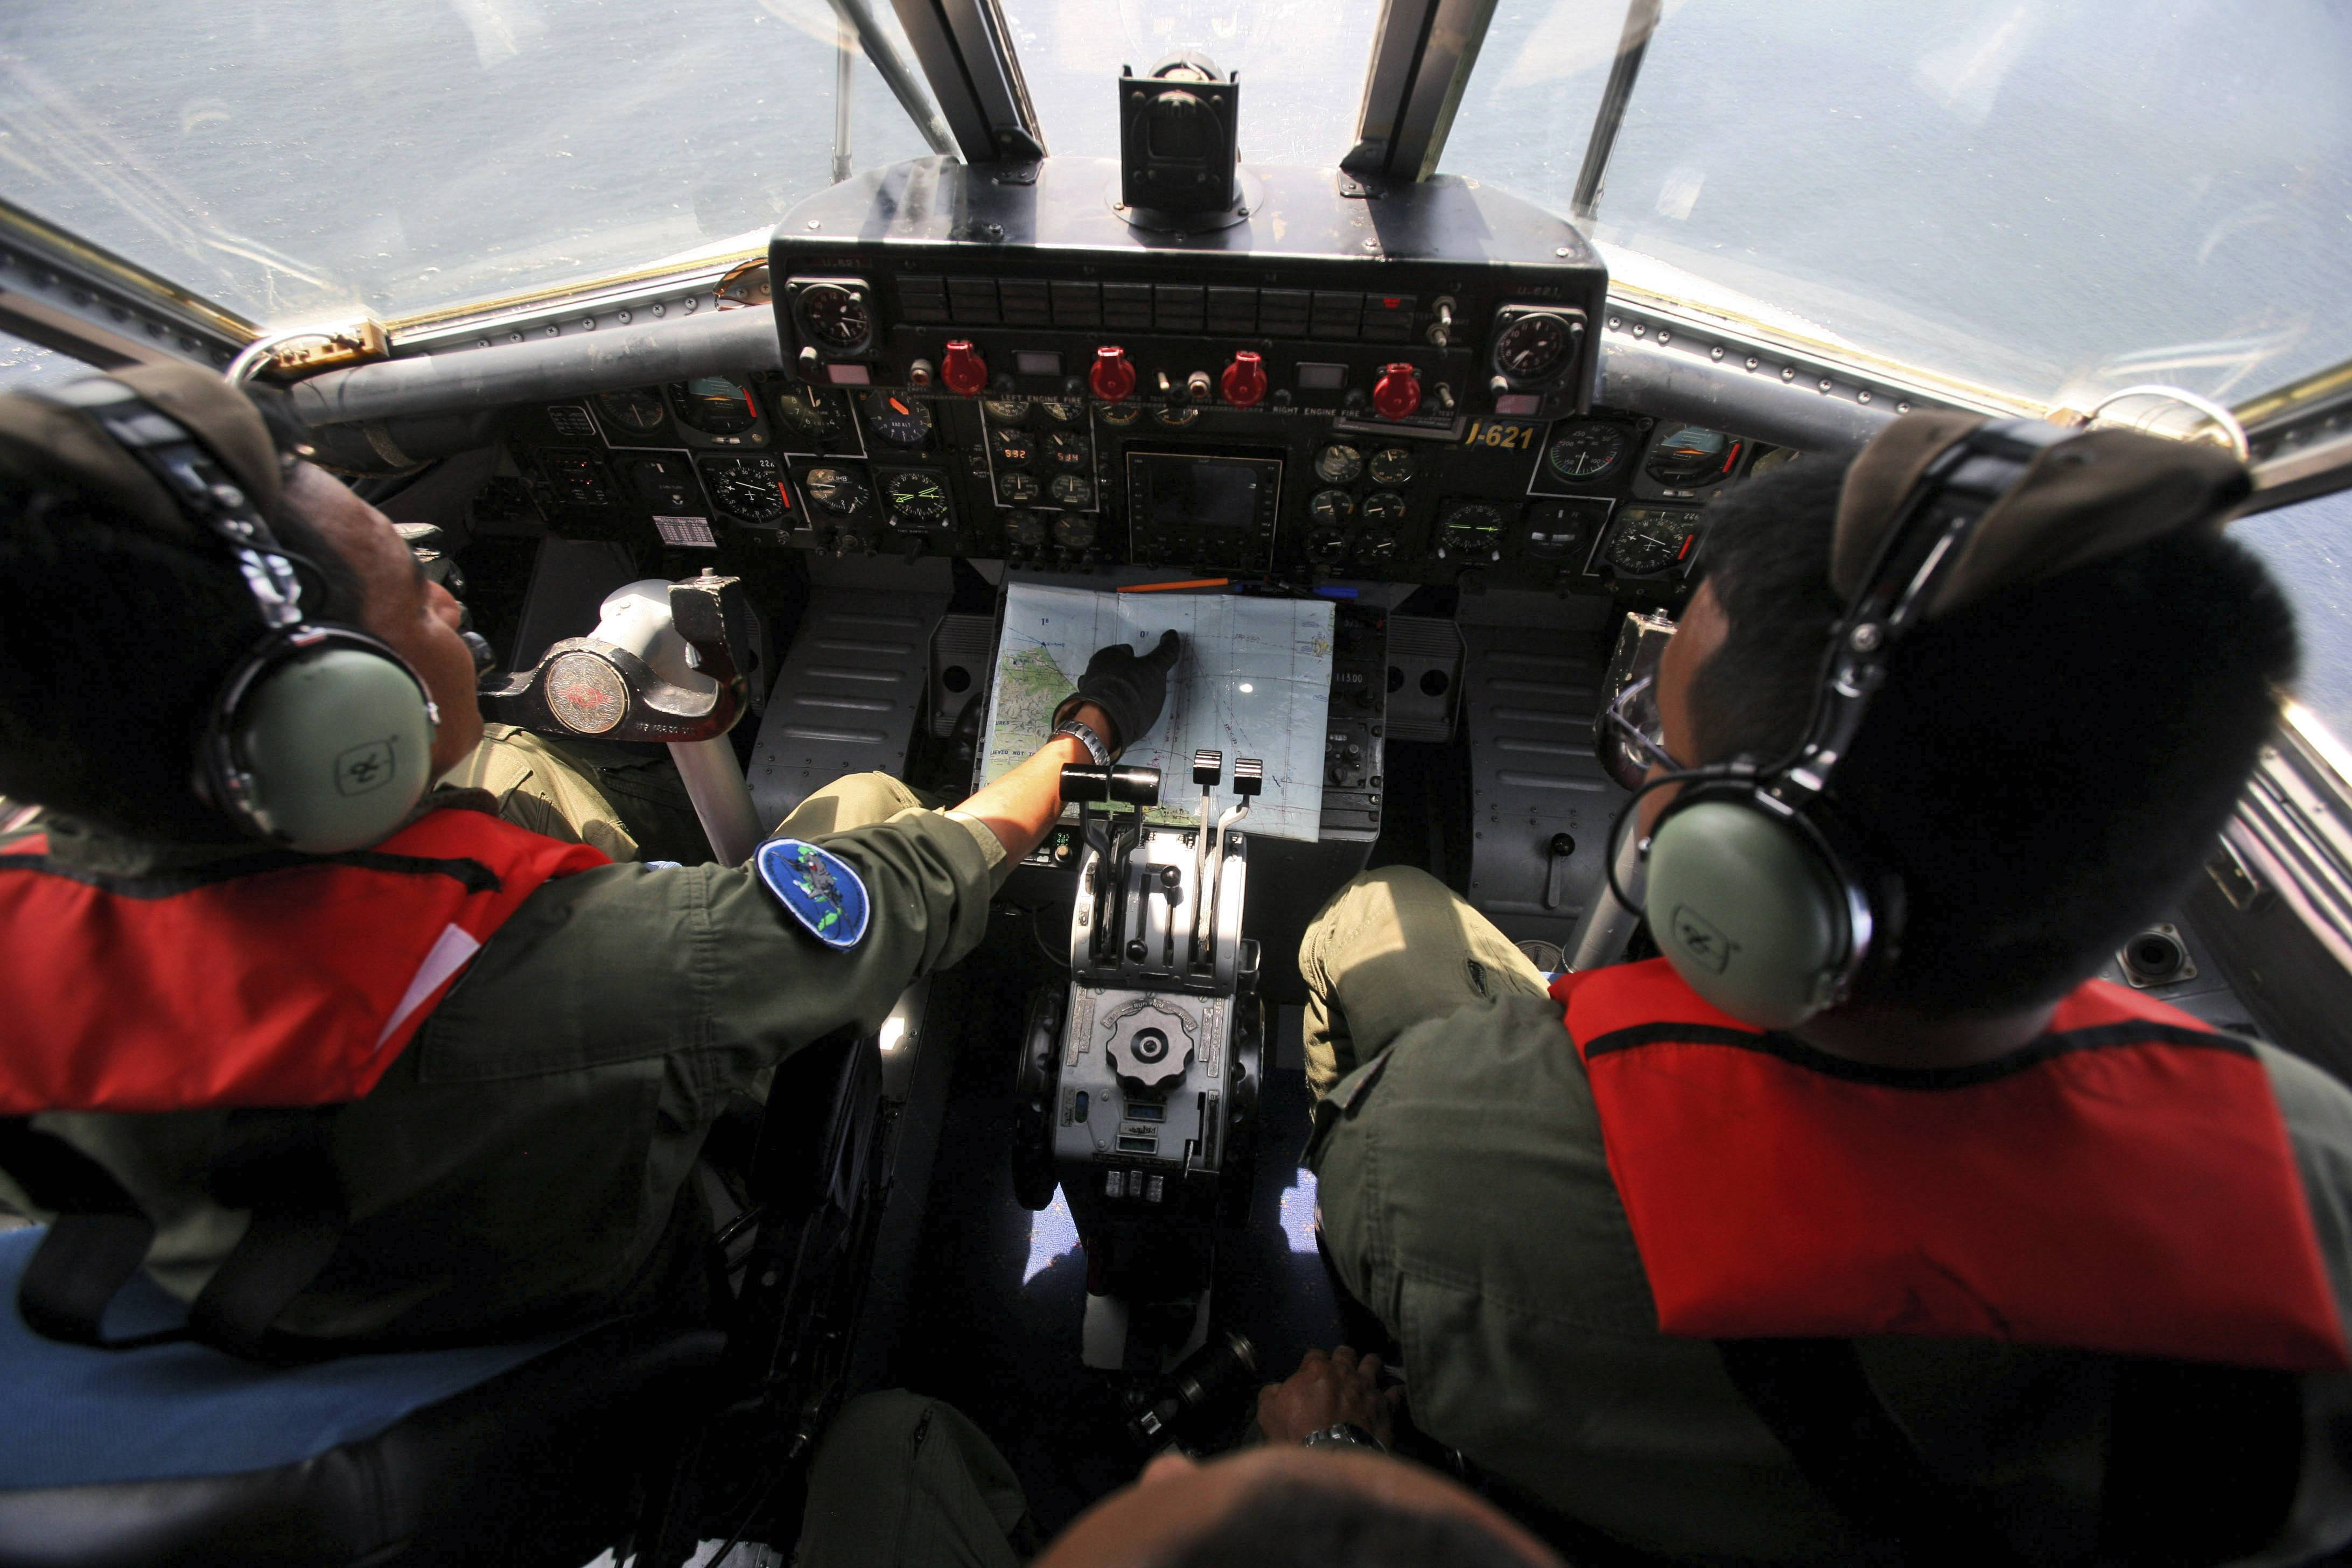 What is known about missing Malaysia Airlines jet